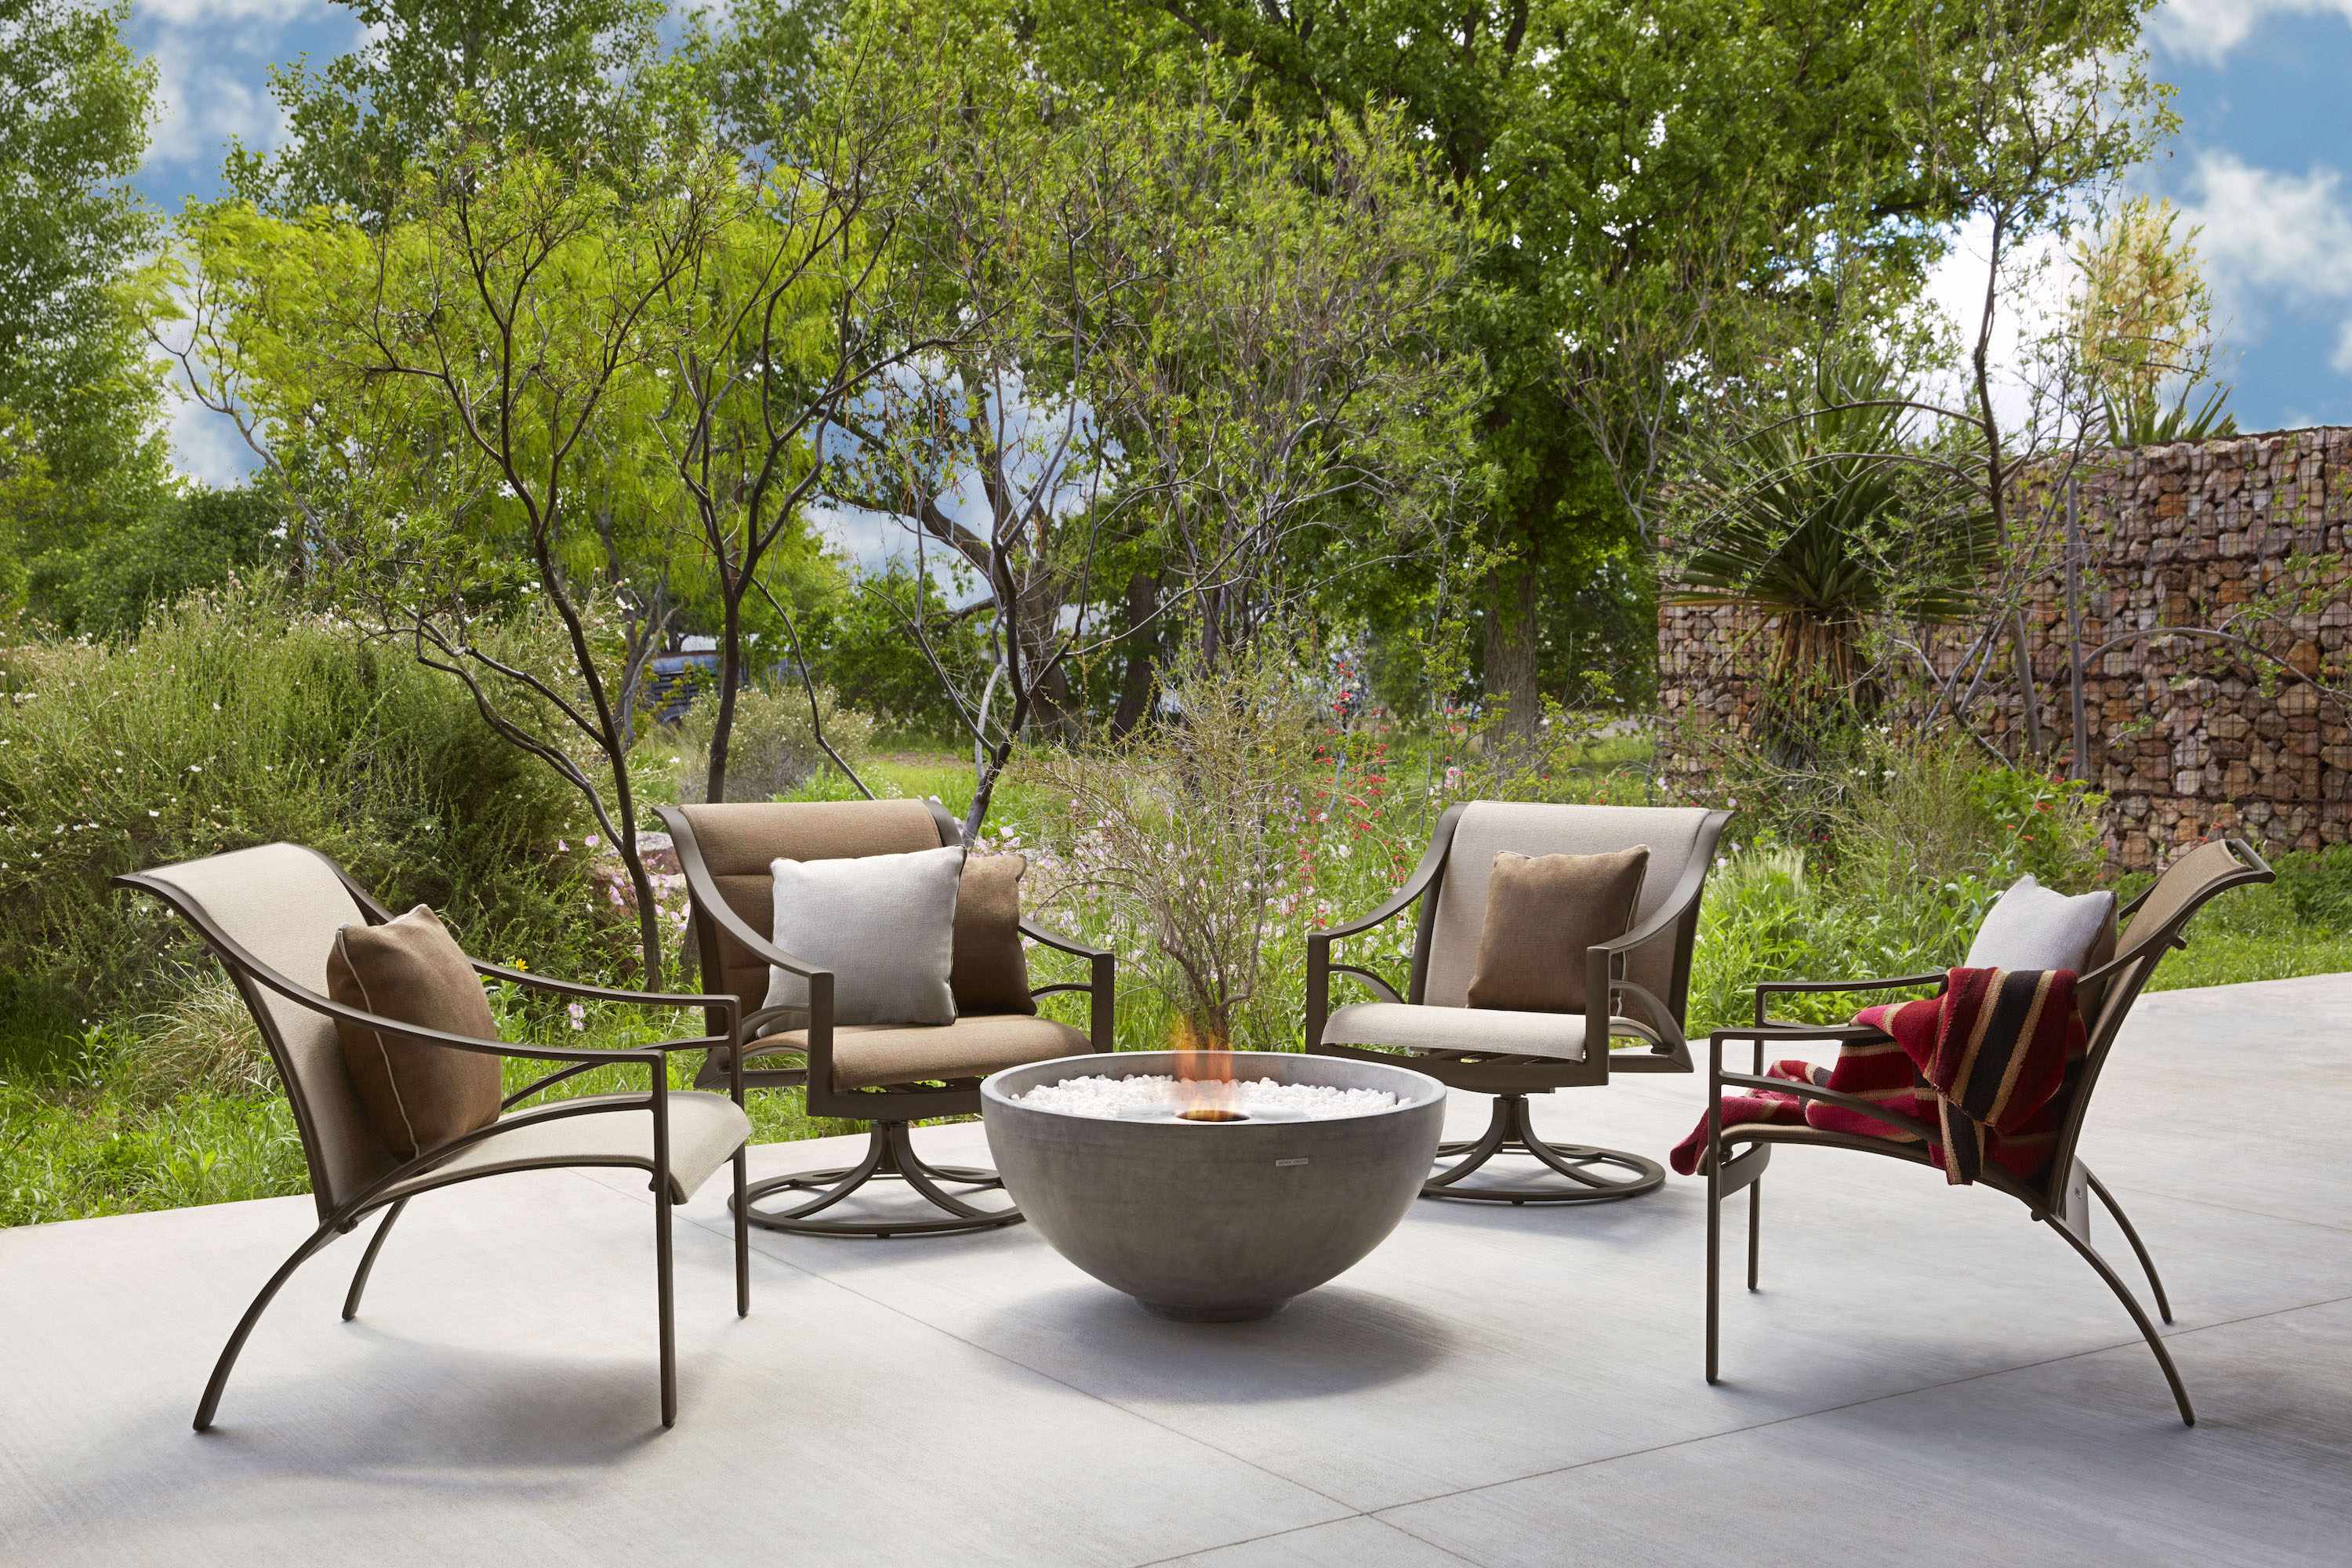 Anthony S Patio Exceptional Furnishings For Outdoor Living Opens Pop Up Showroom At Hill